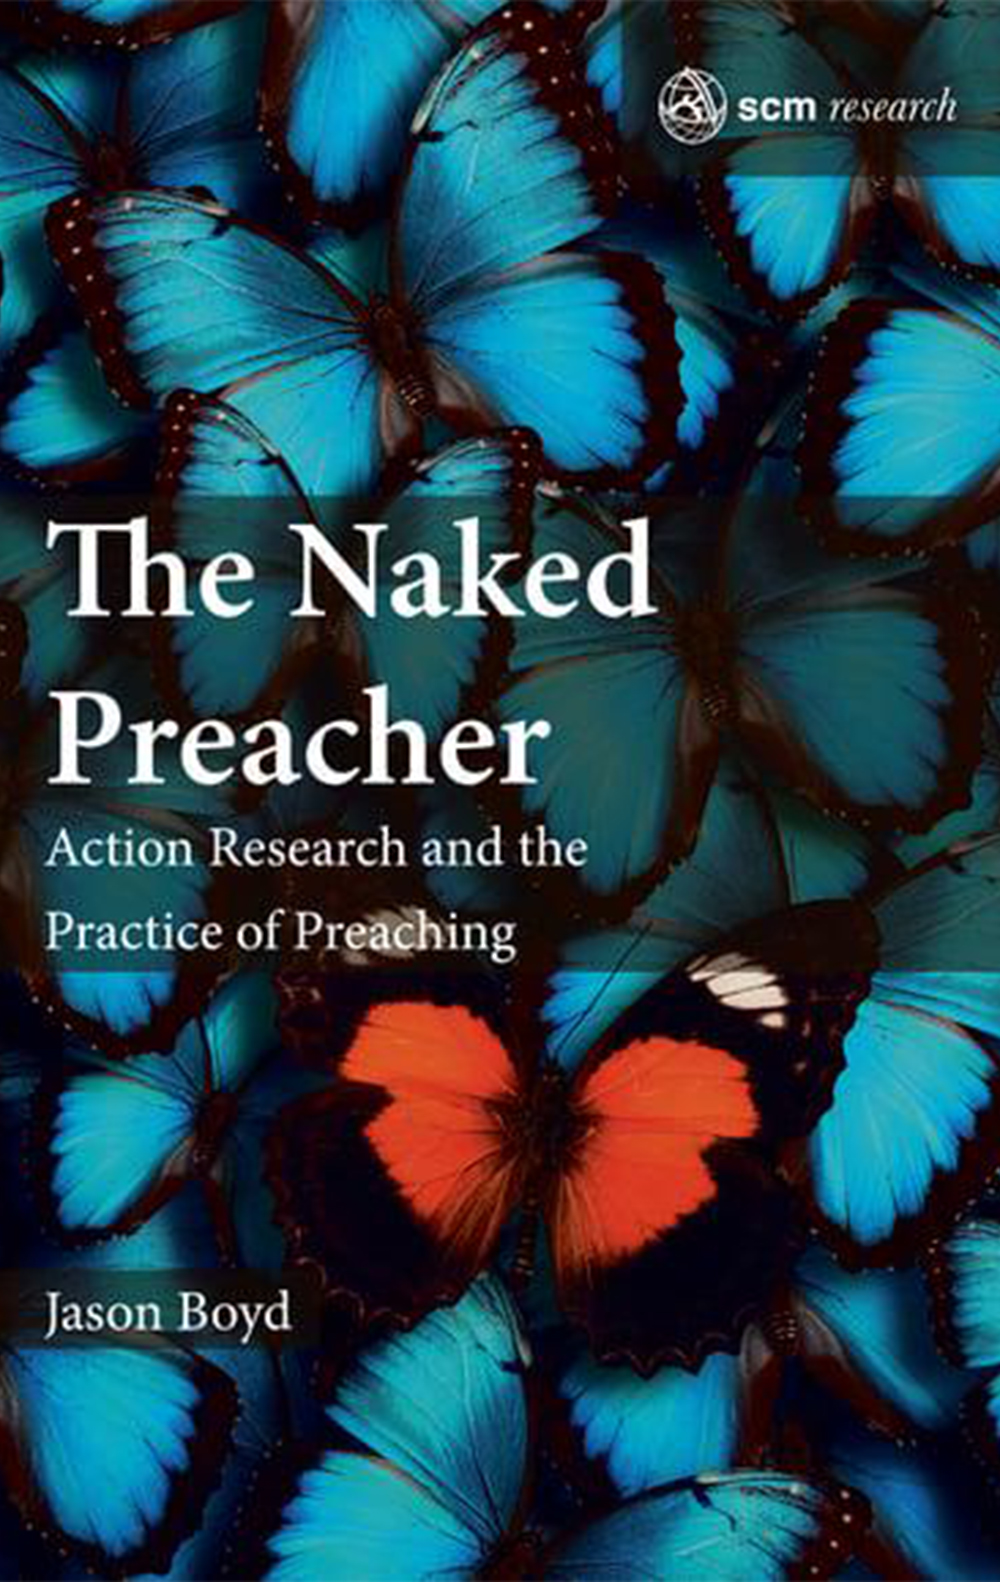 The Naked Preacher